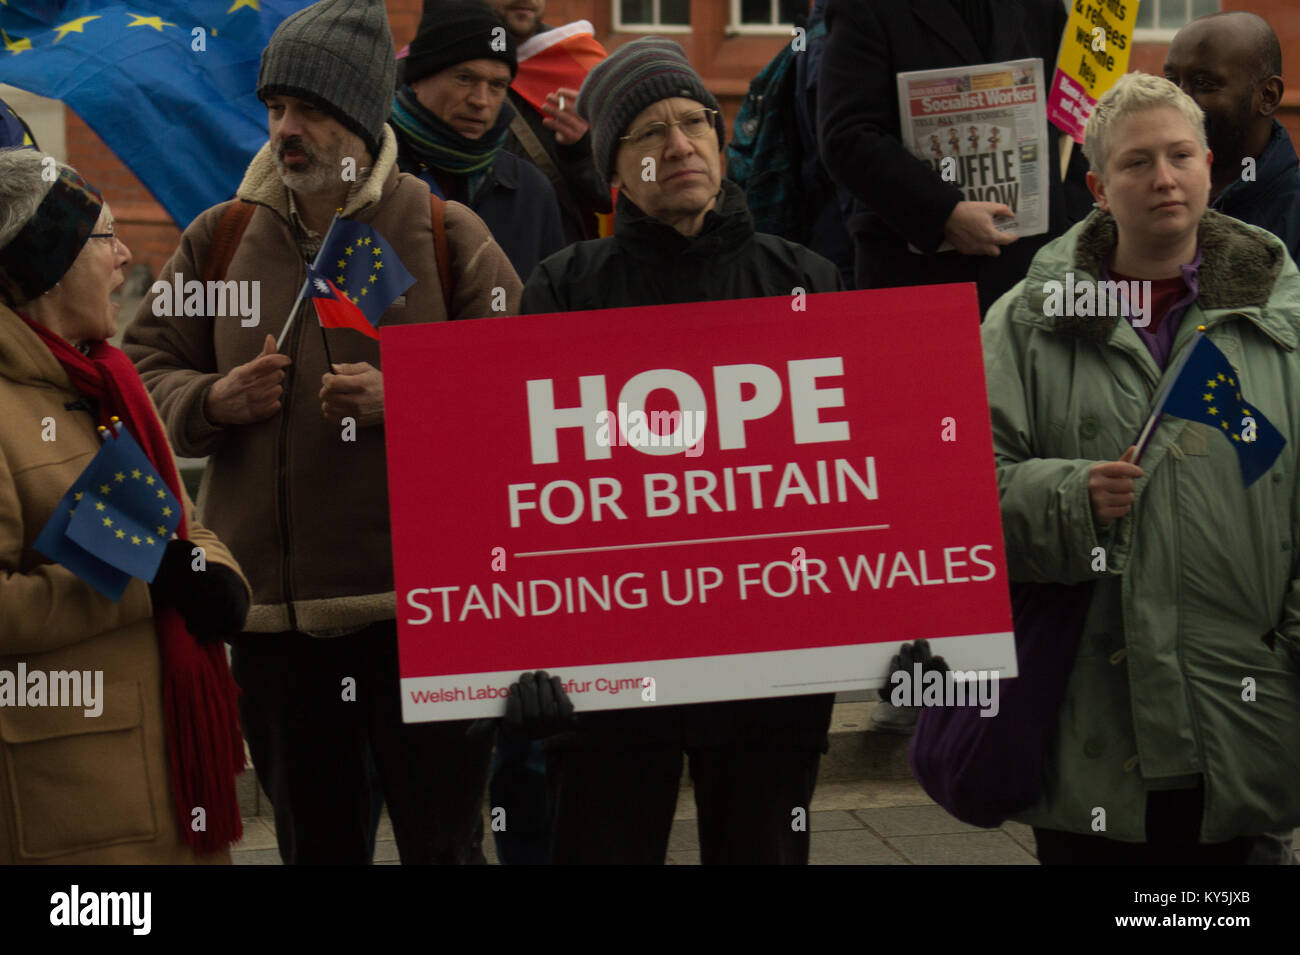 Cardiff, UK. 13th January, 2018. A small number of members of the group Make Britain Great Again gathered outside - Stock Image